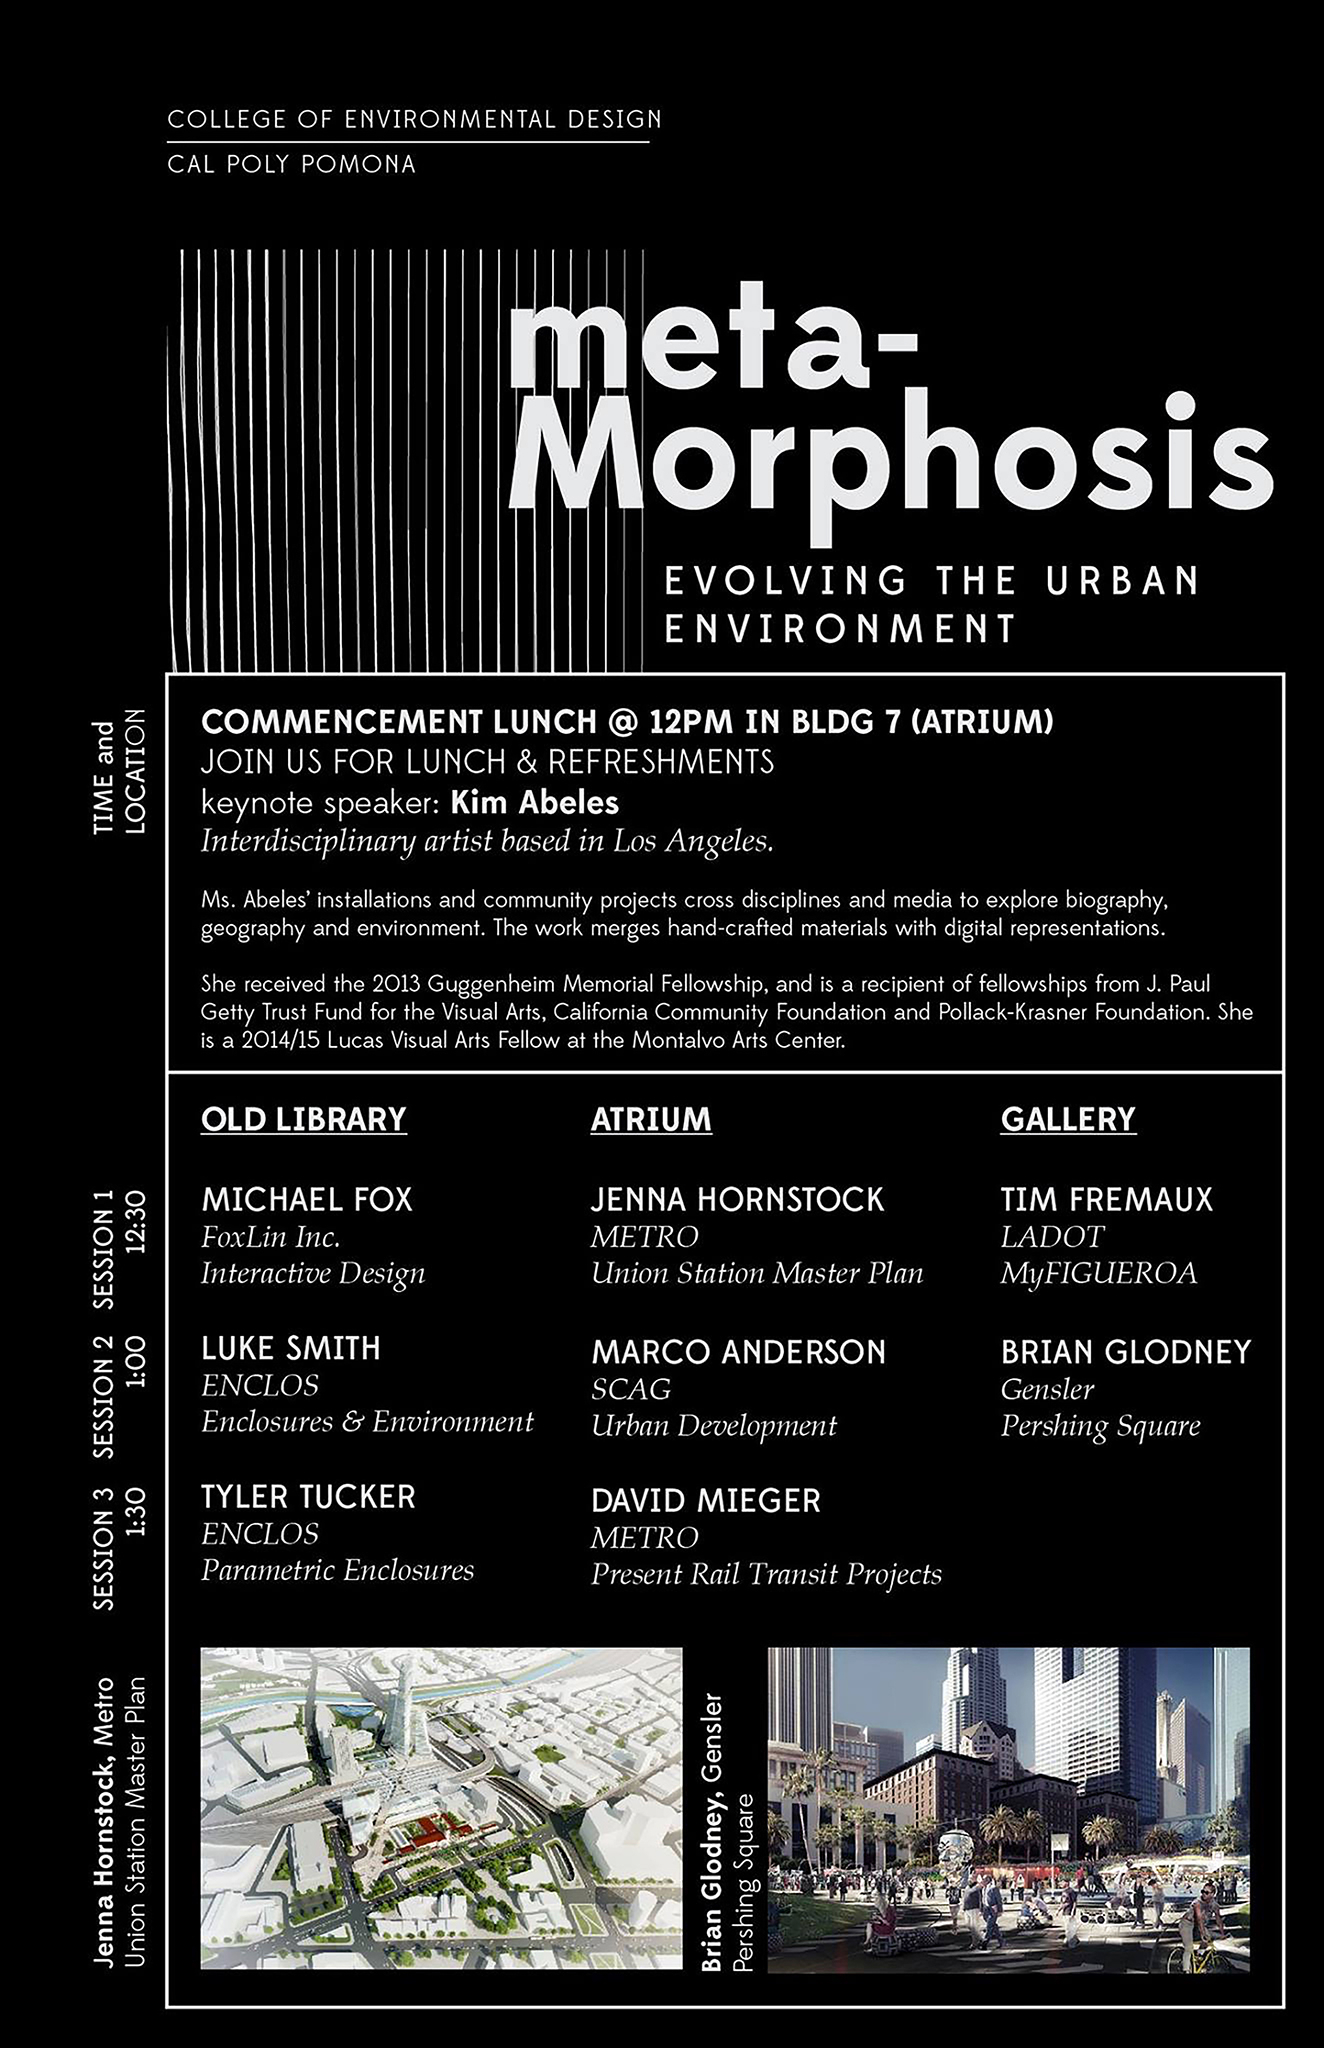 Metamorphosis: Evolving the Urban Environment